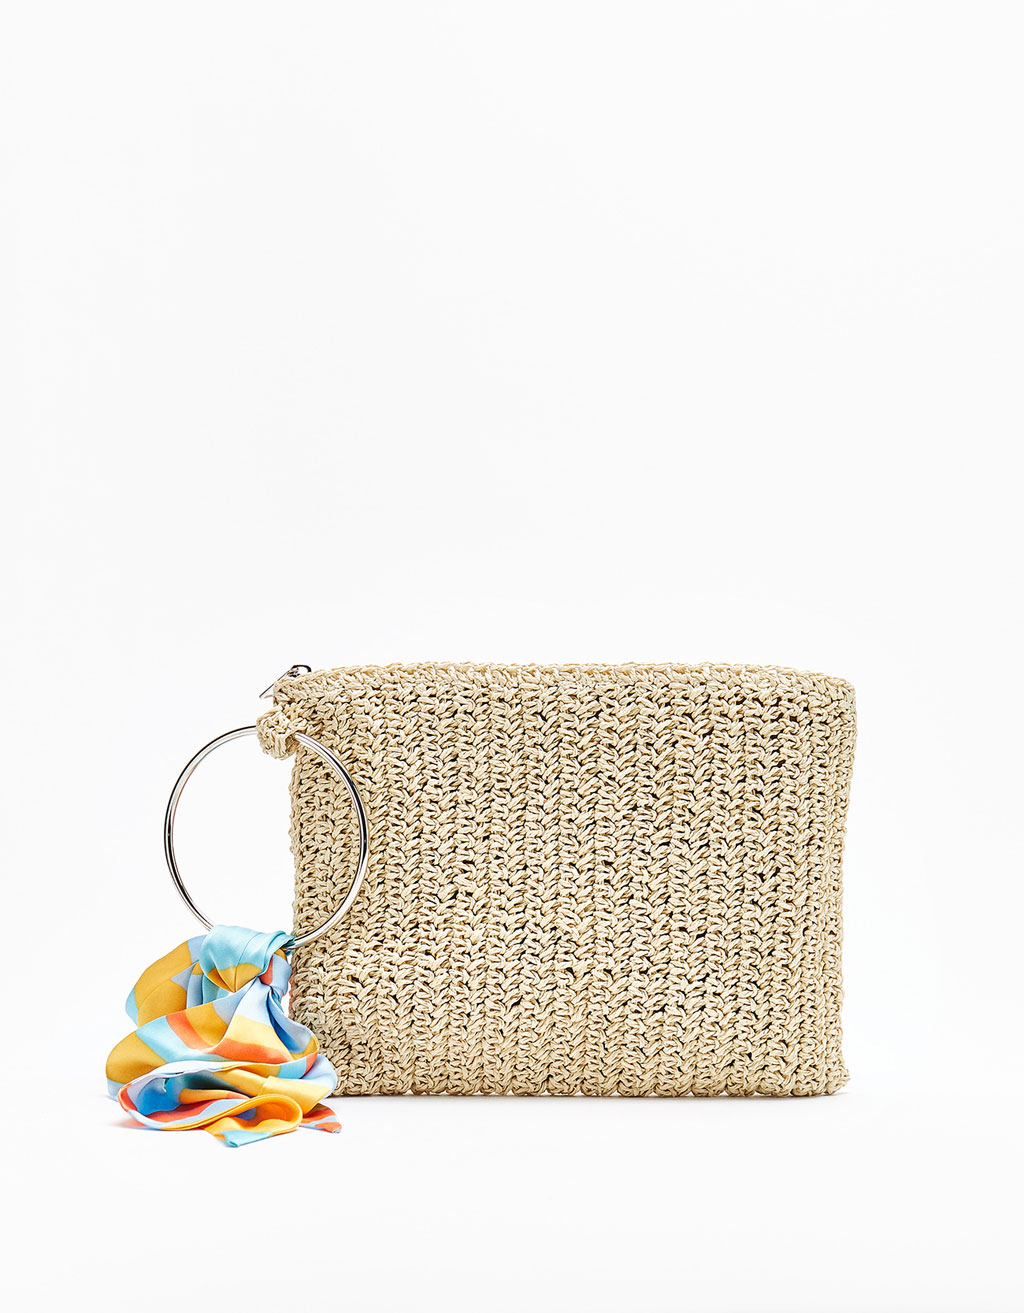 Raffia clutch with a ring